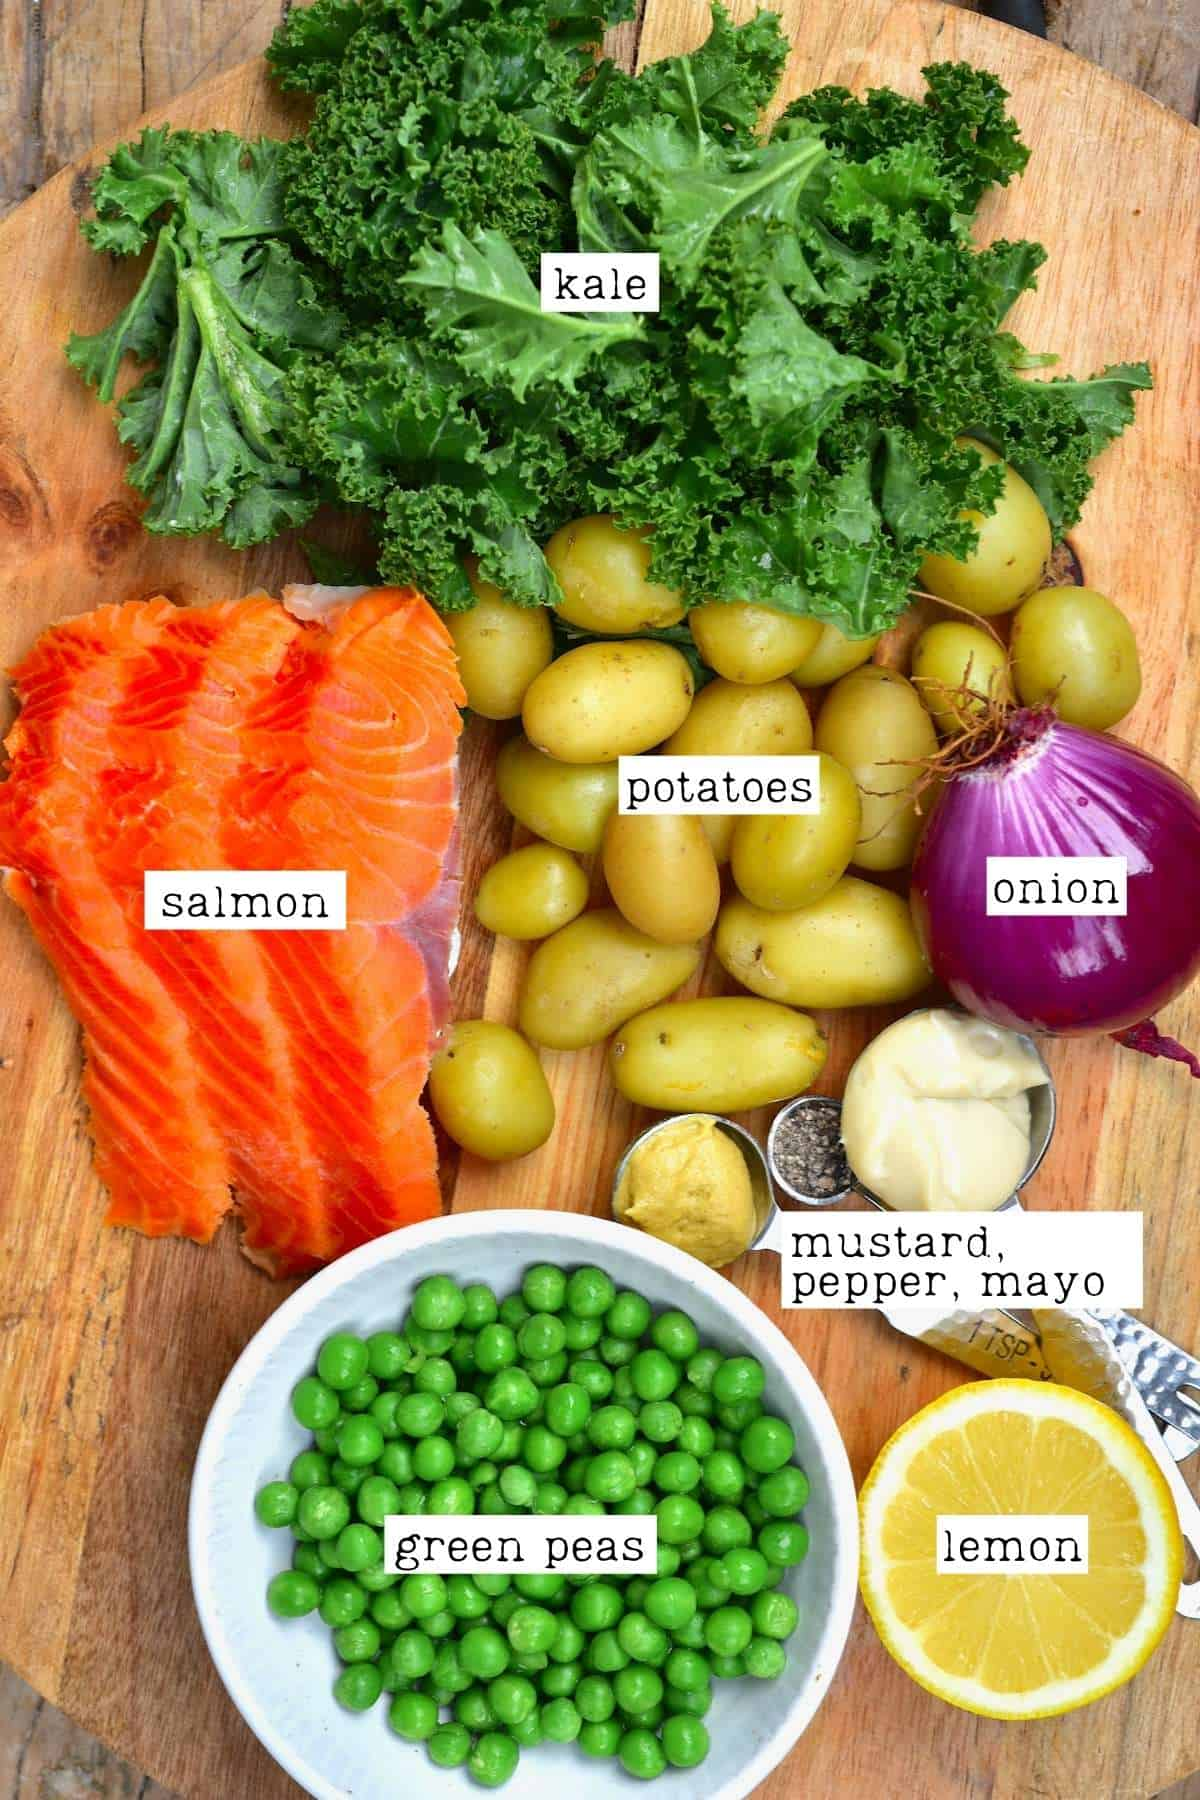 Ingredients for salmon potato salad